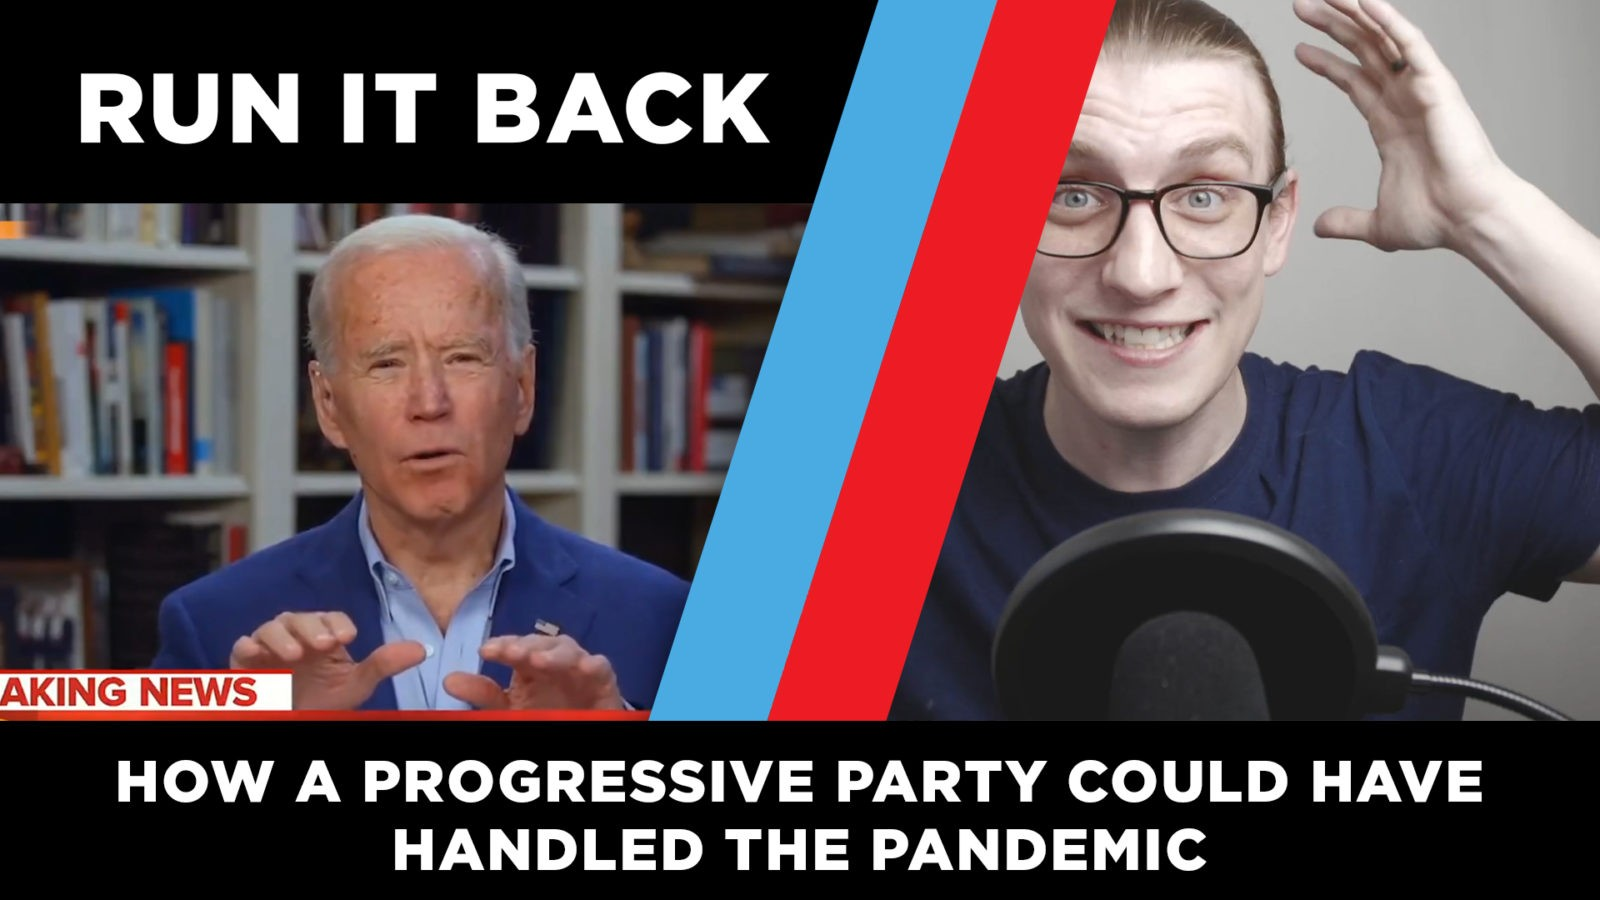 VIDEO:  How a Progressive Democratic Party Could Have Responded to Coronavirus